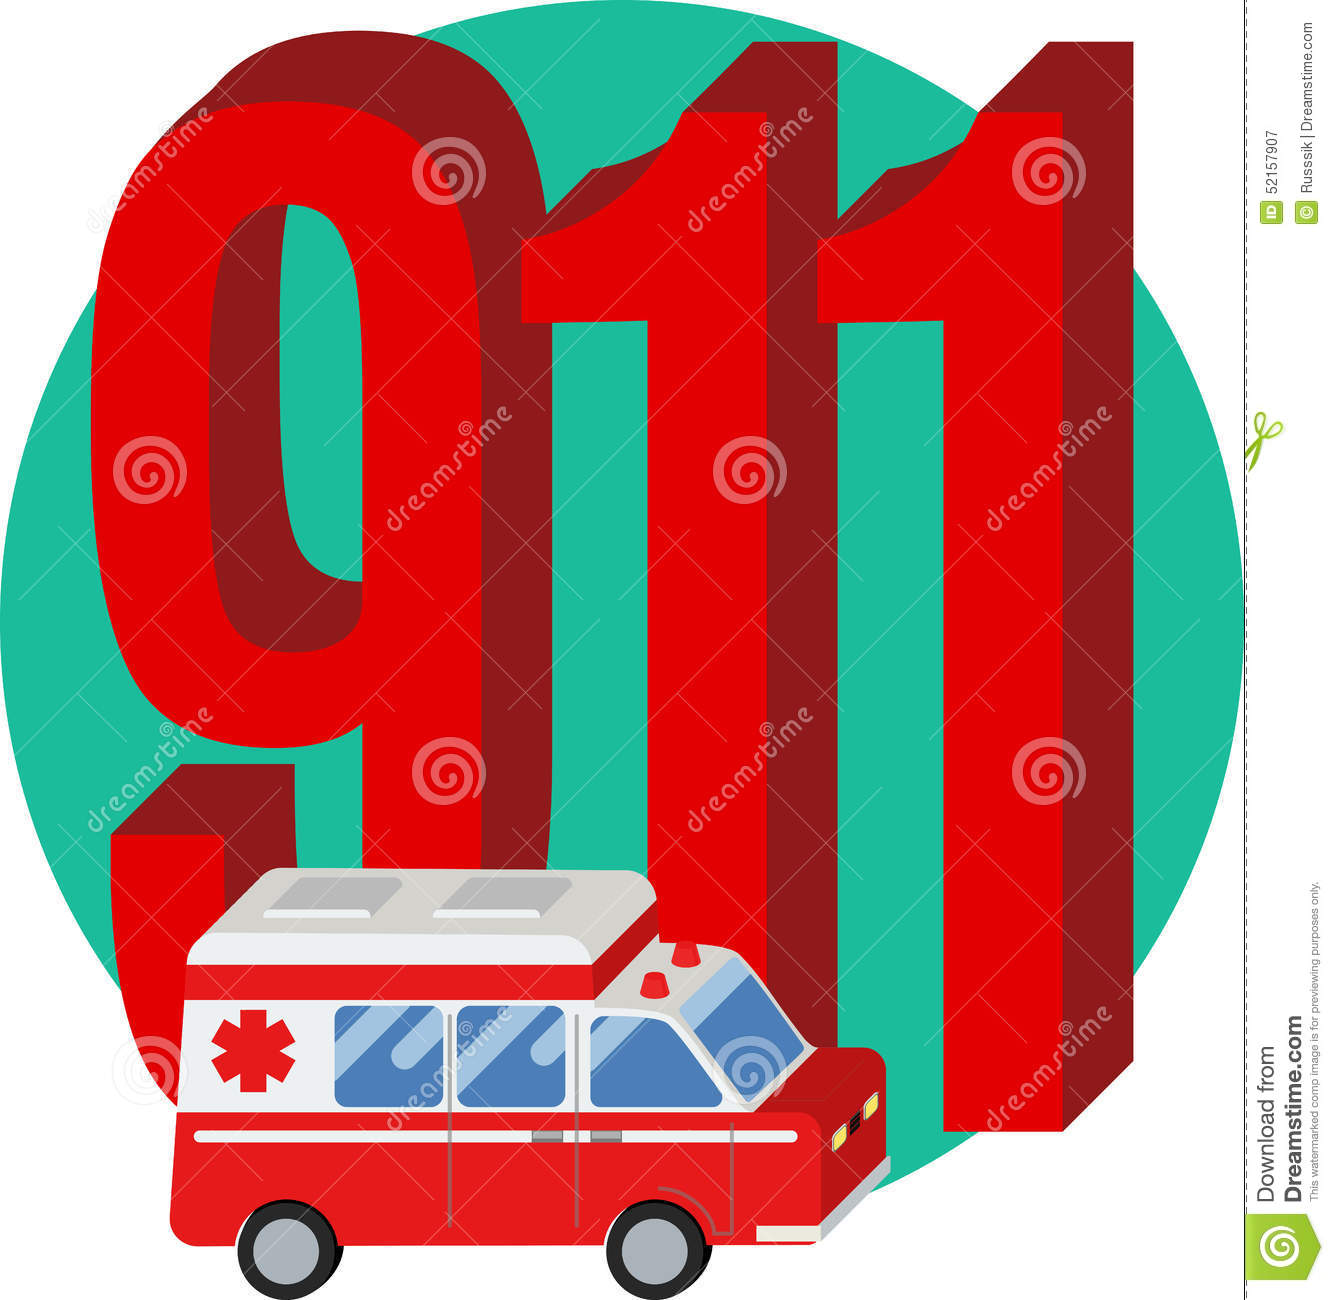 911 Phone Number Stock Vector